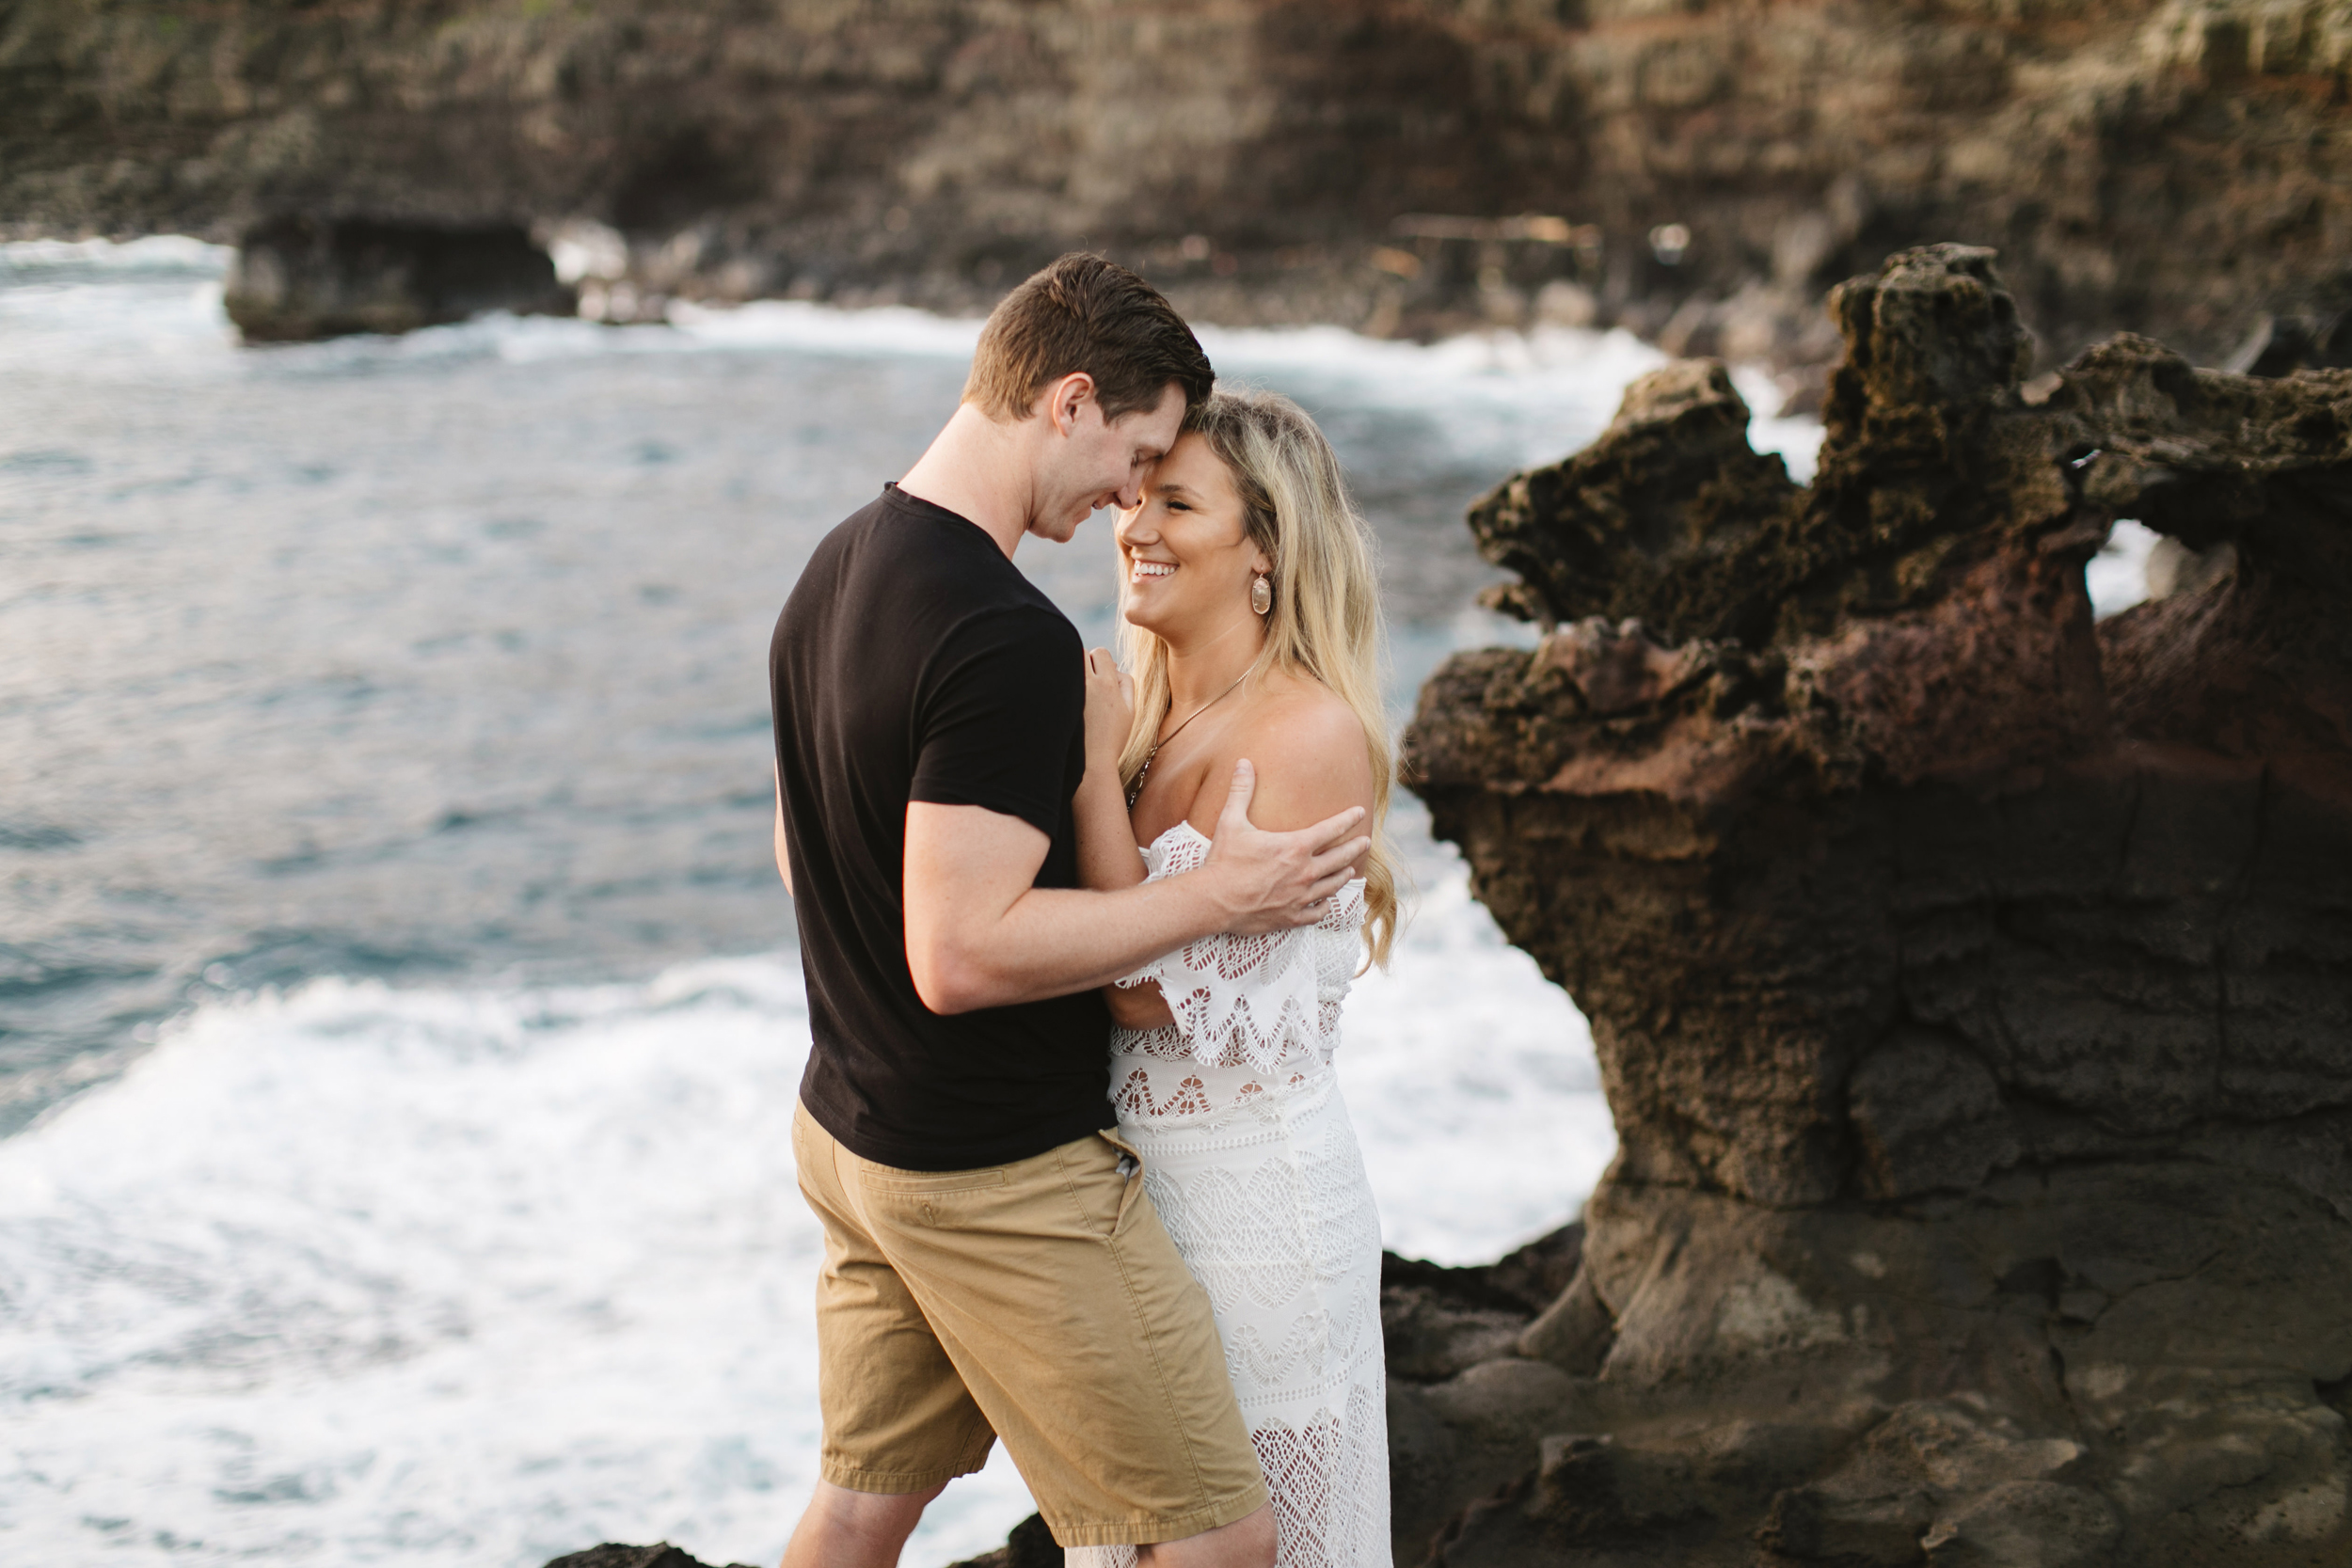 A man and his fiance snuggle during their Maui Adventure Engagement Photography Session by Hawaii Elopement Photographer Colby and Jess